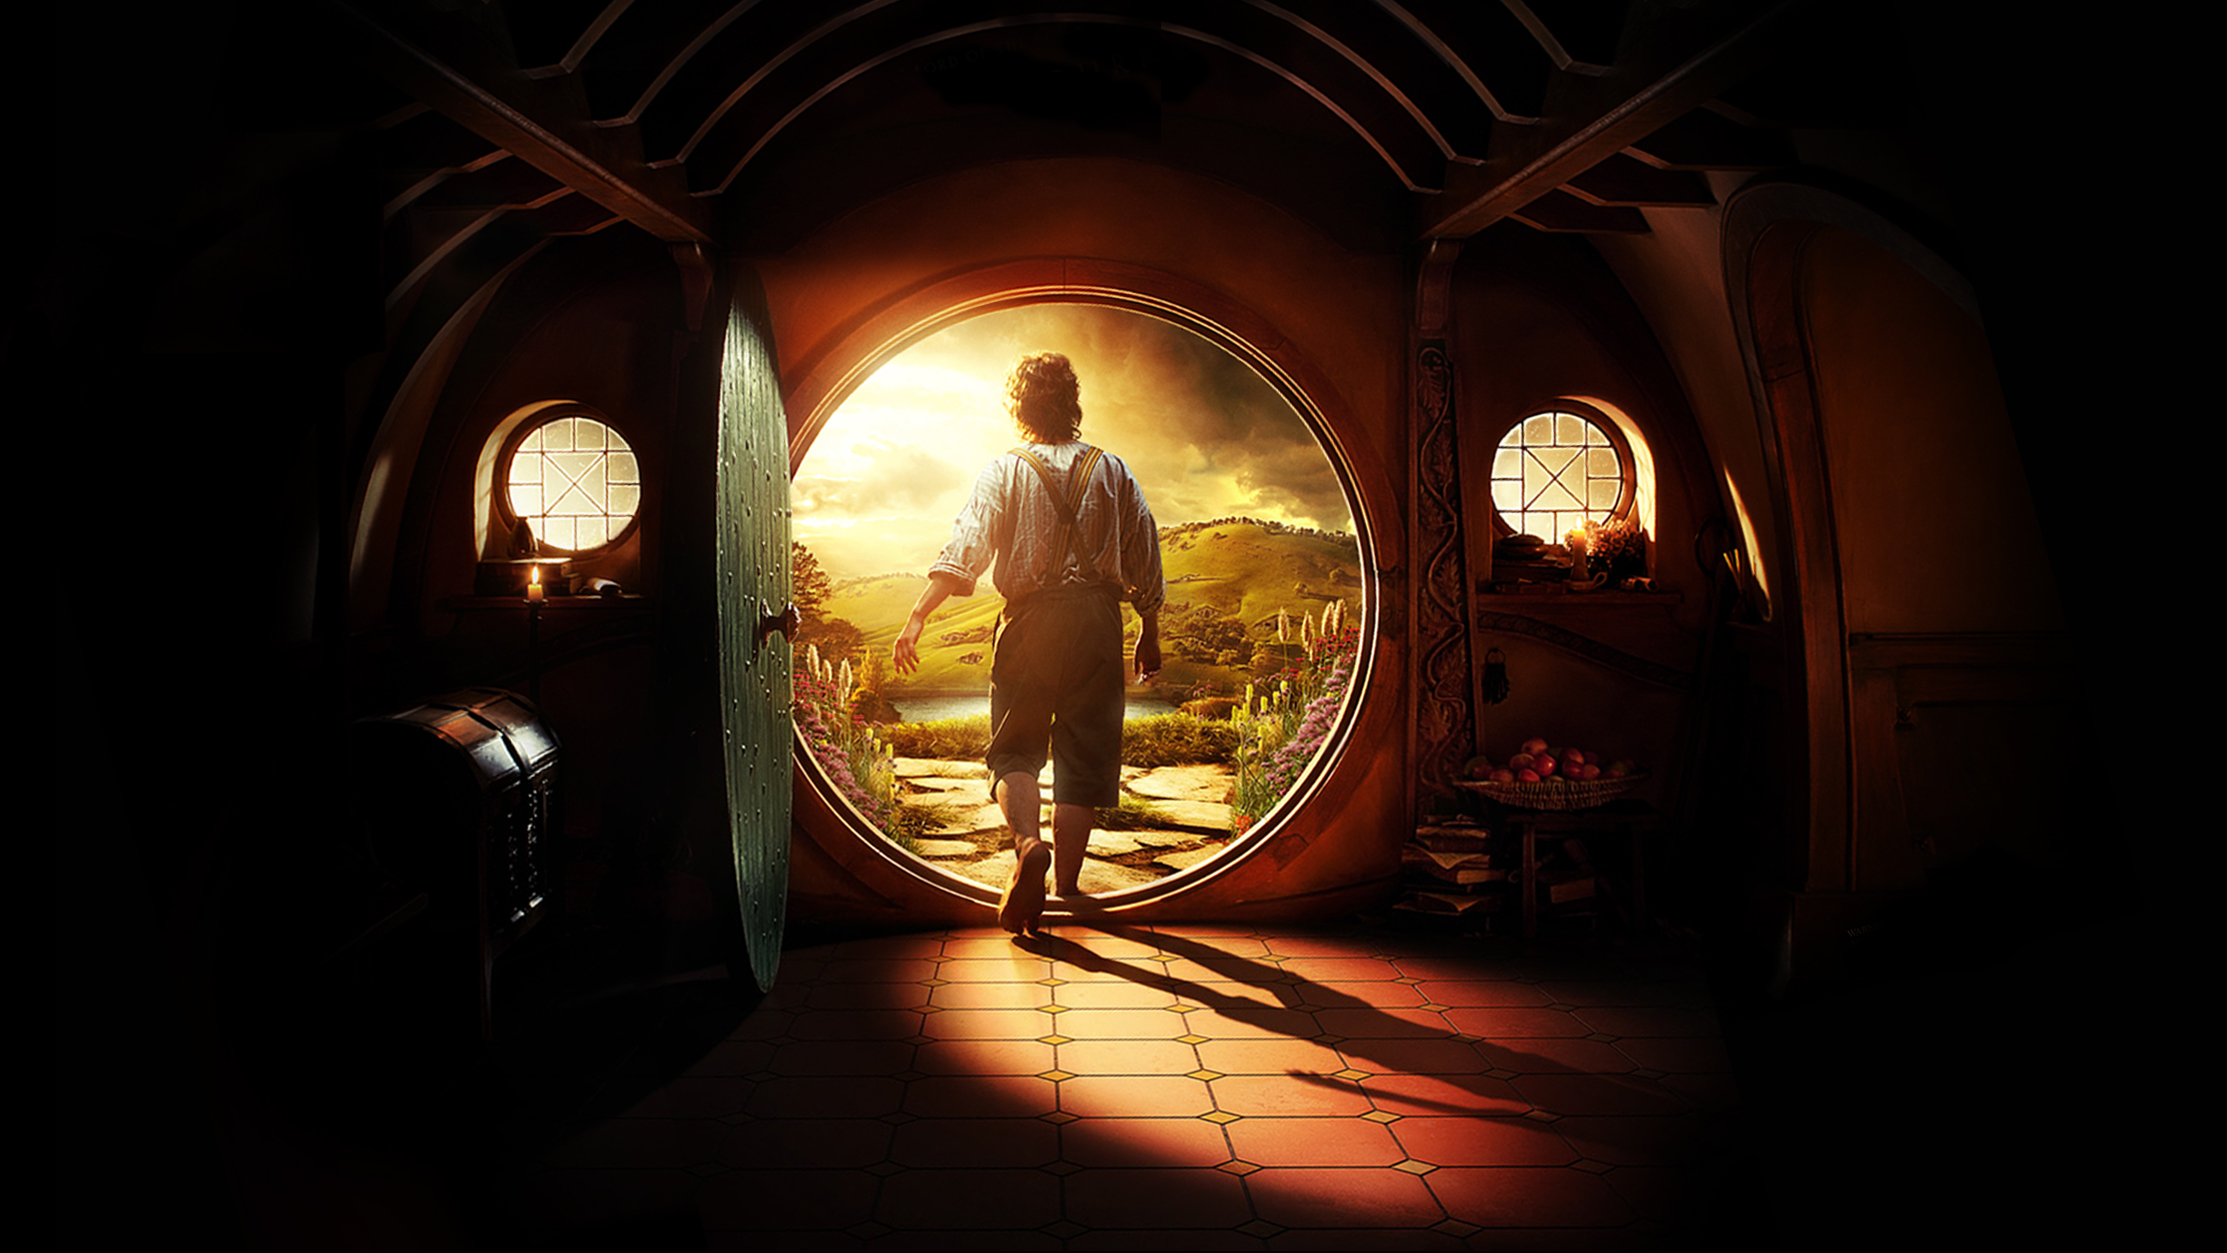 The Hobbit   Bilbo Baggins Wallpaper   The Hobbit Photo 33042280 2227x1253